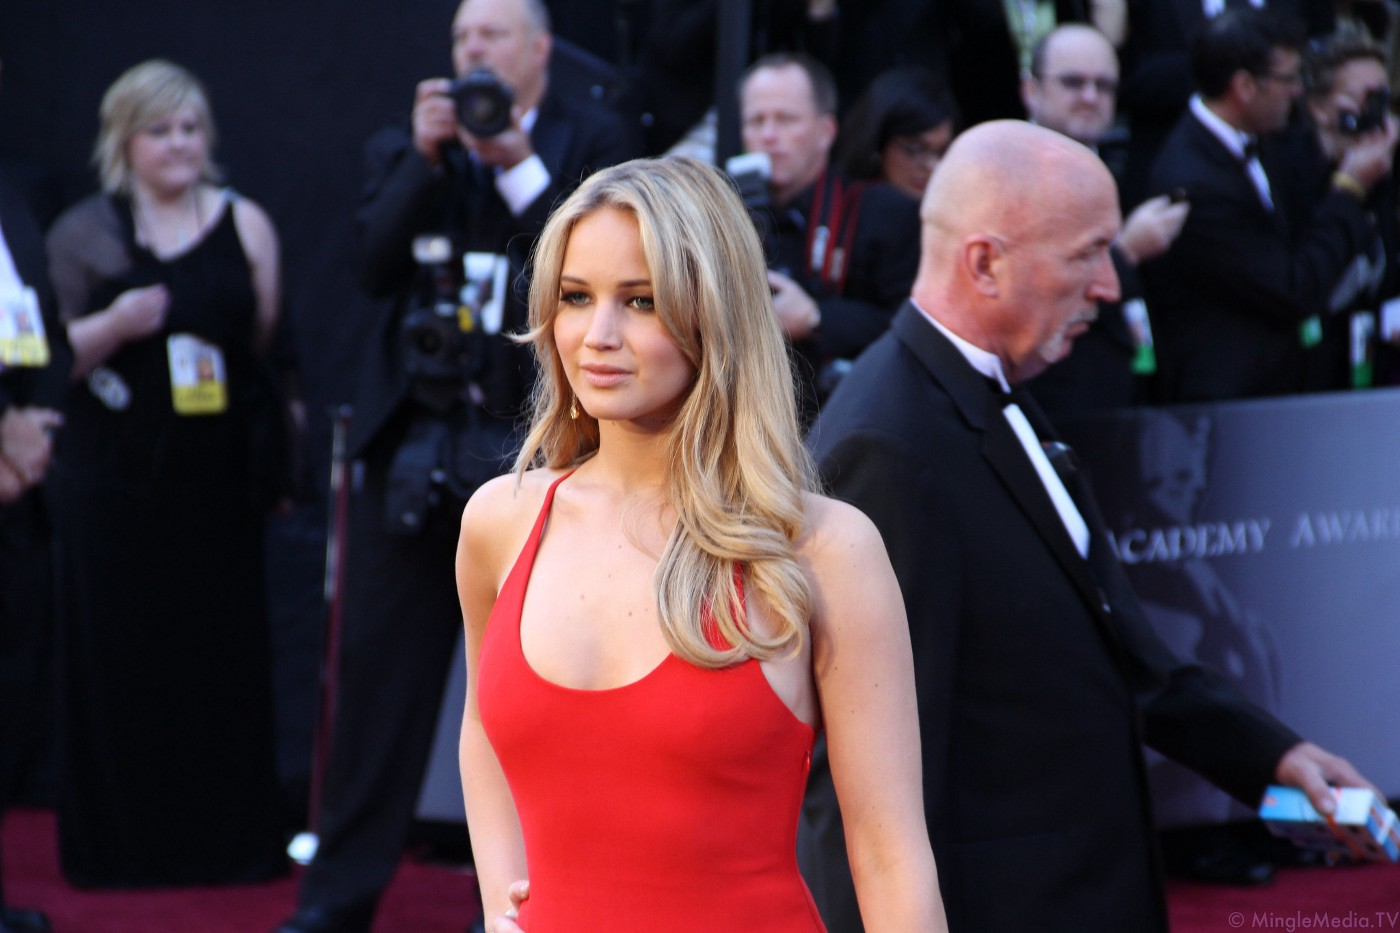 Actress Jennifer Lawrence in a red dress